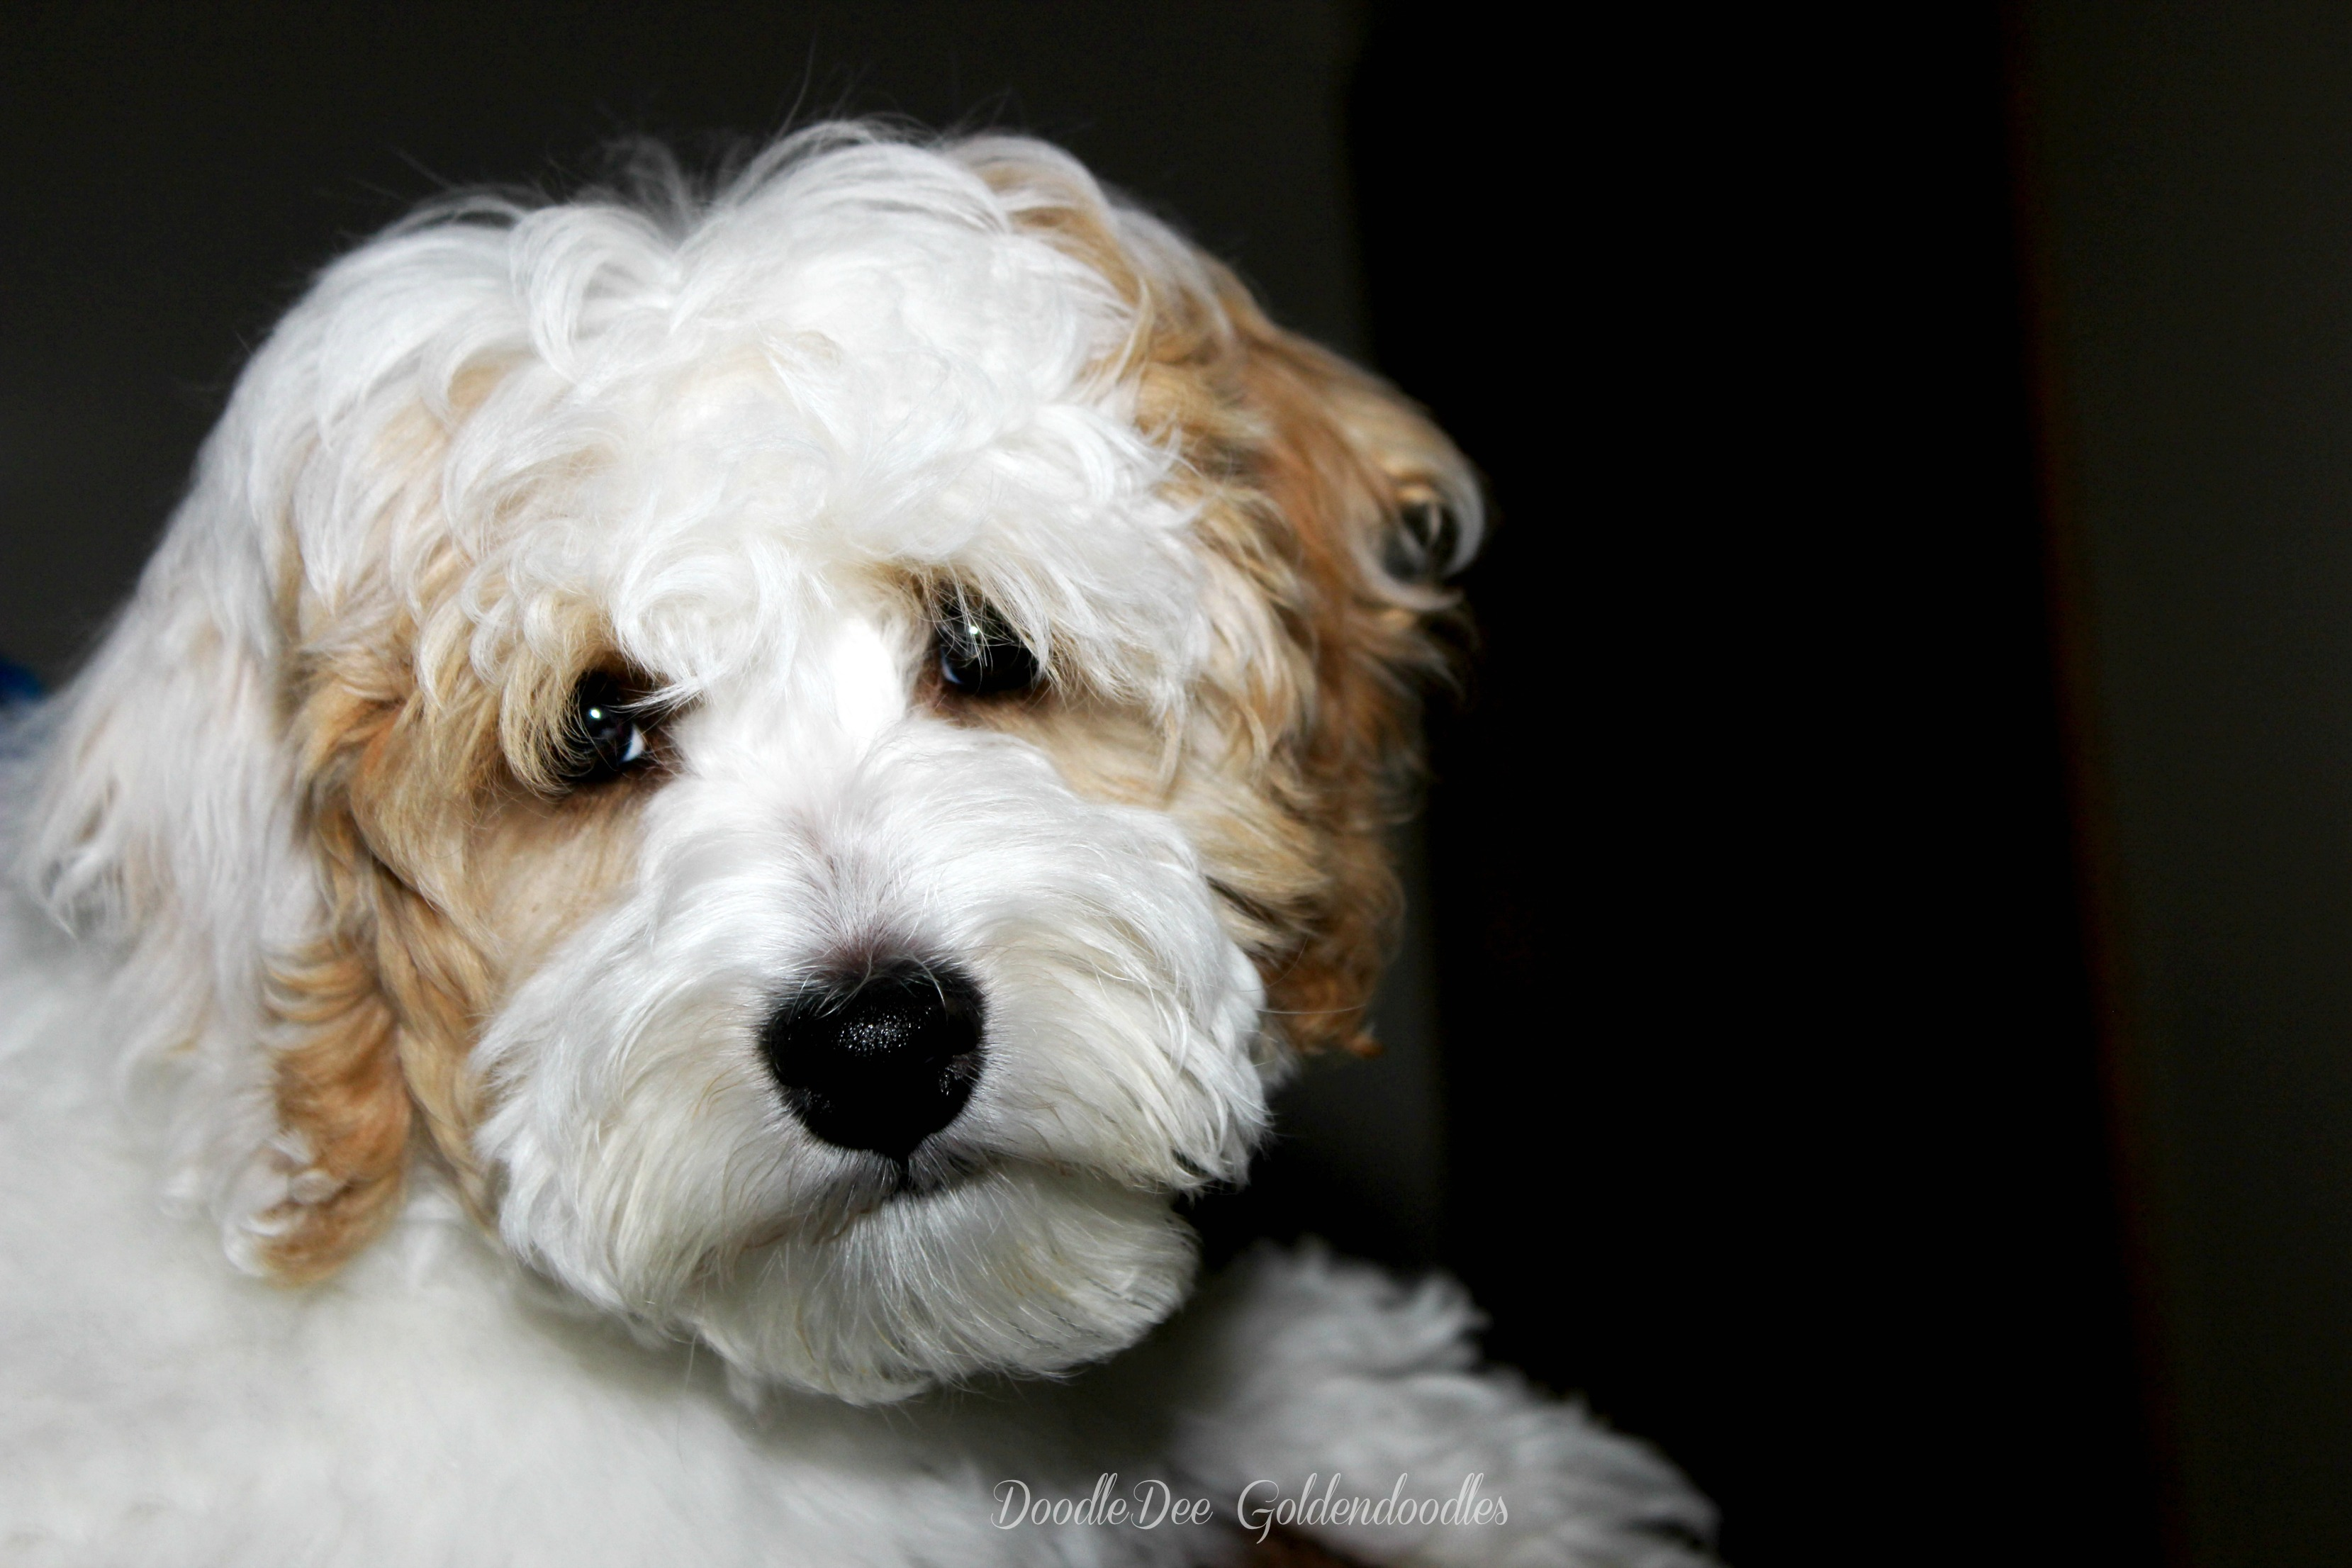 MicroMini Goldendoodles & Petite Goldendoodles  We breed for